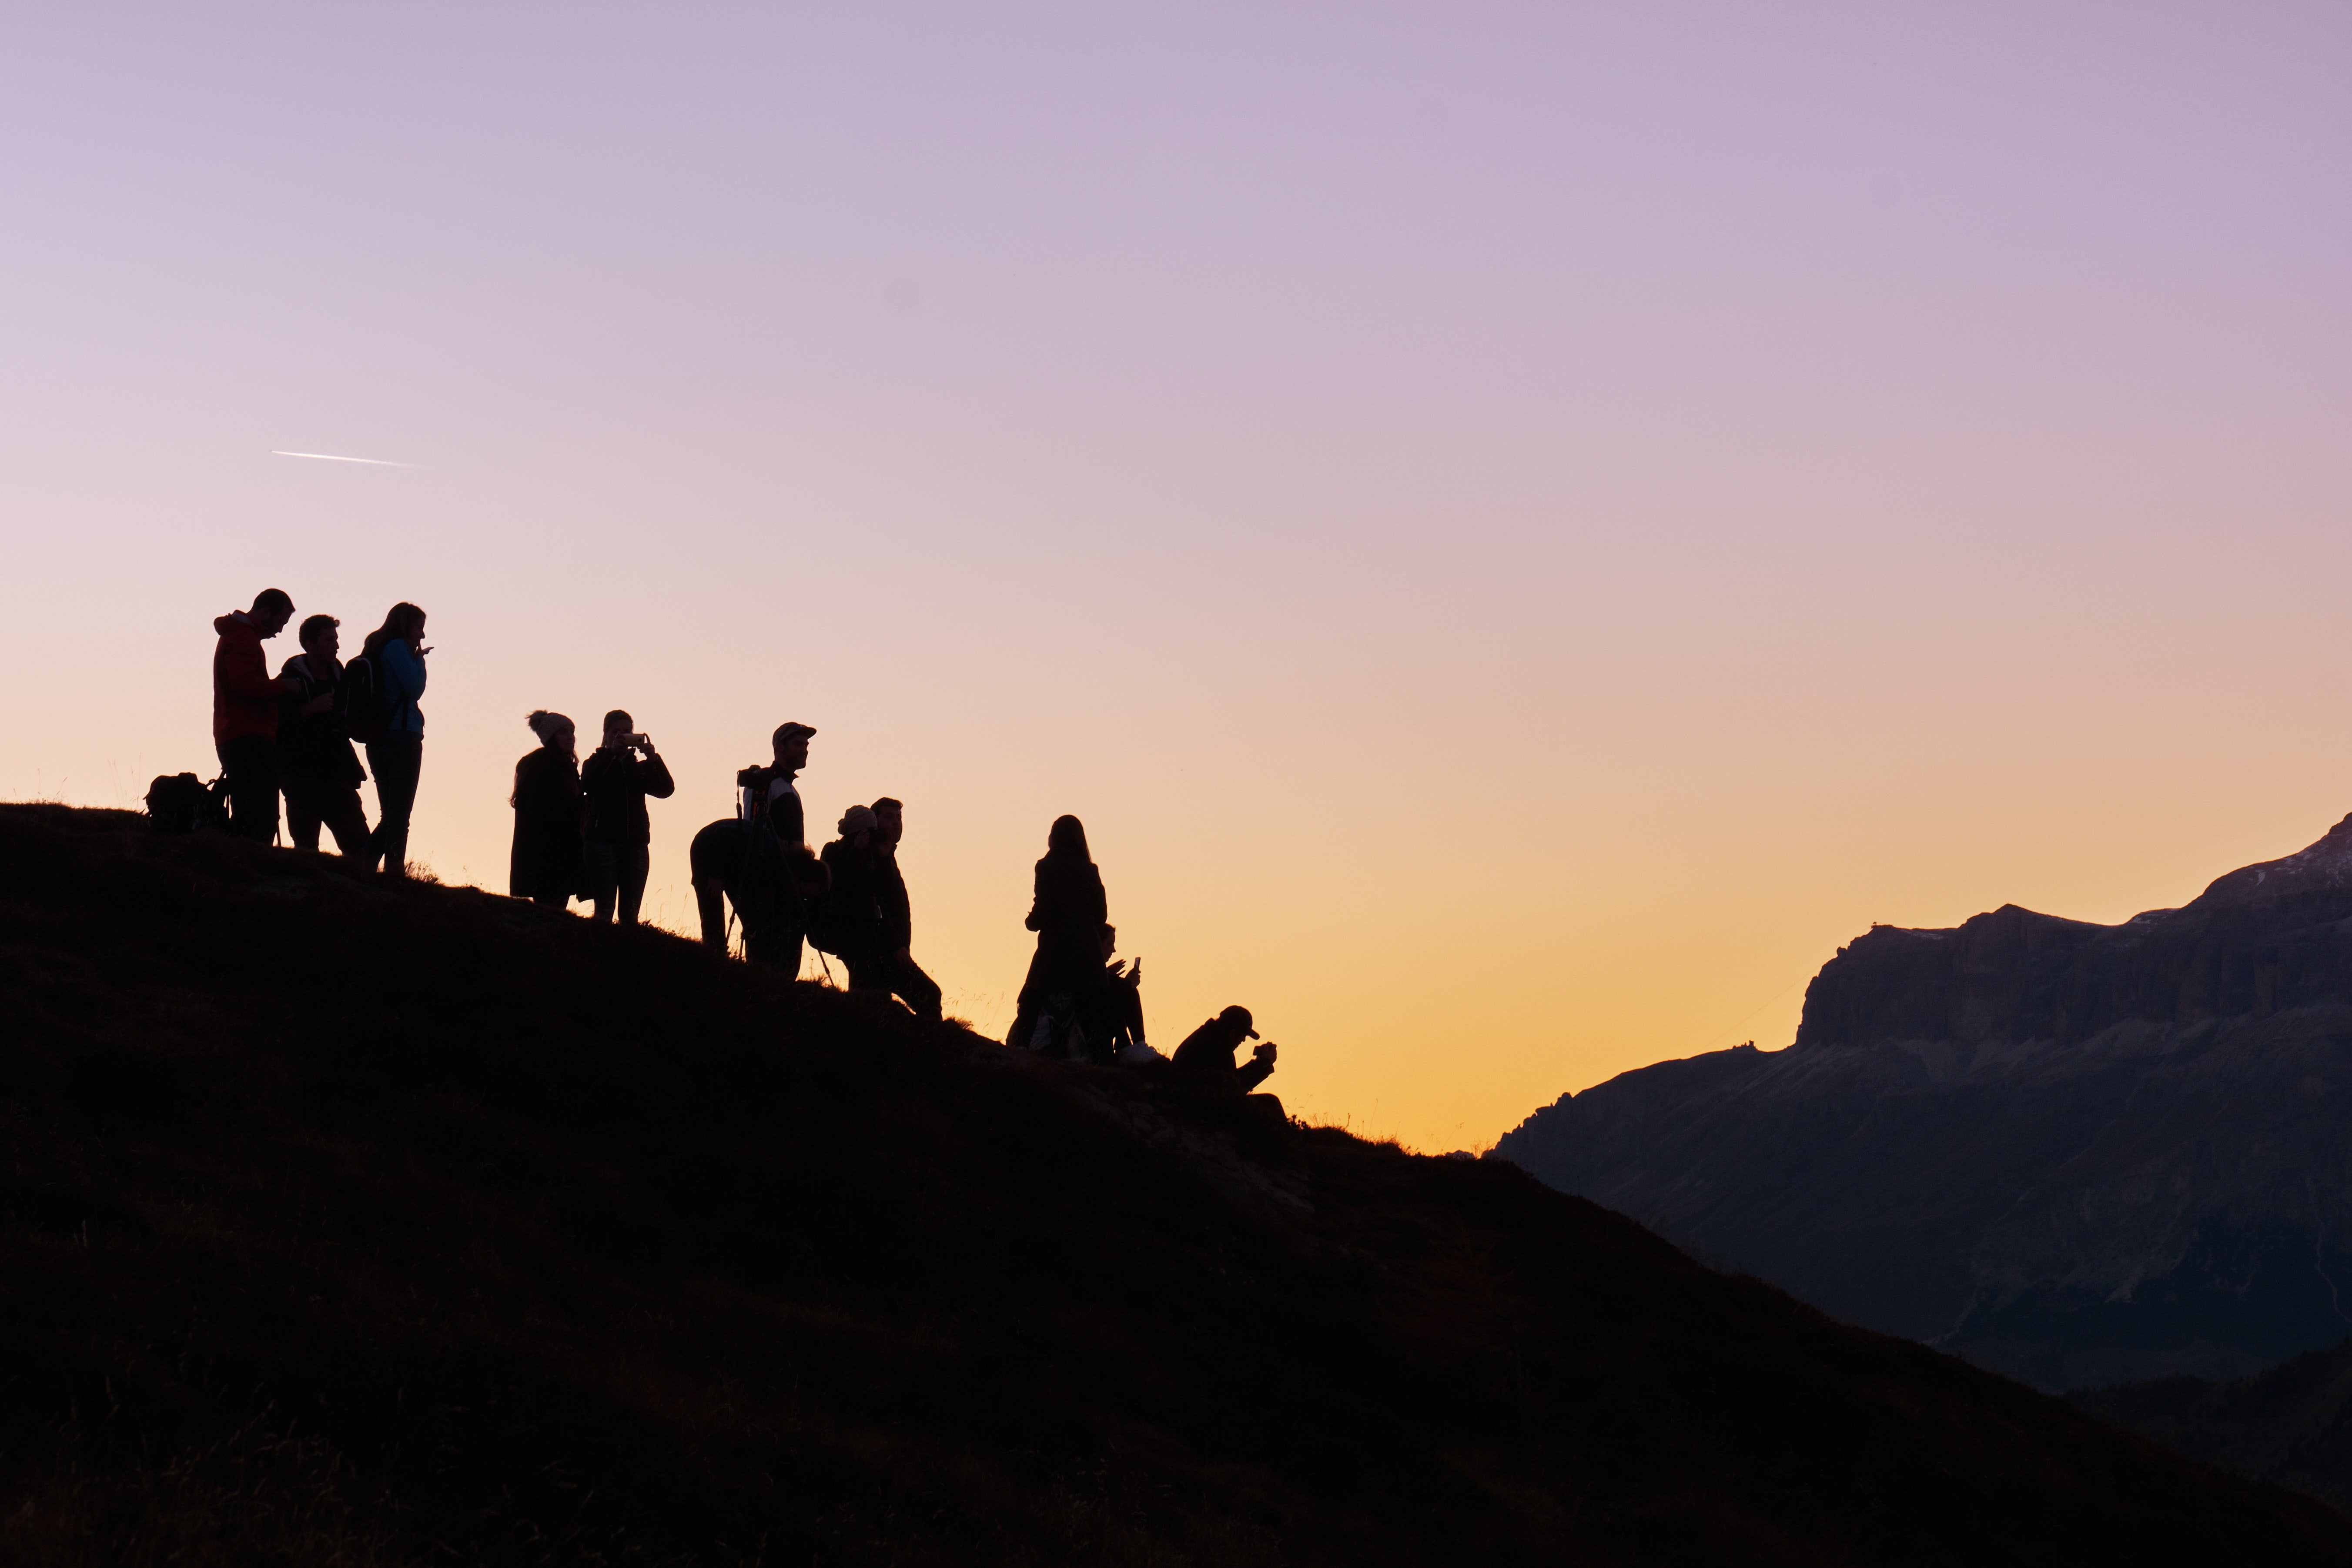 silhouette of hikers on a hill at sunset